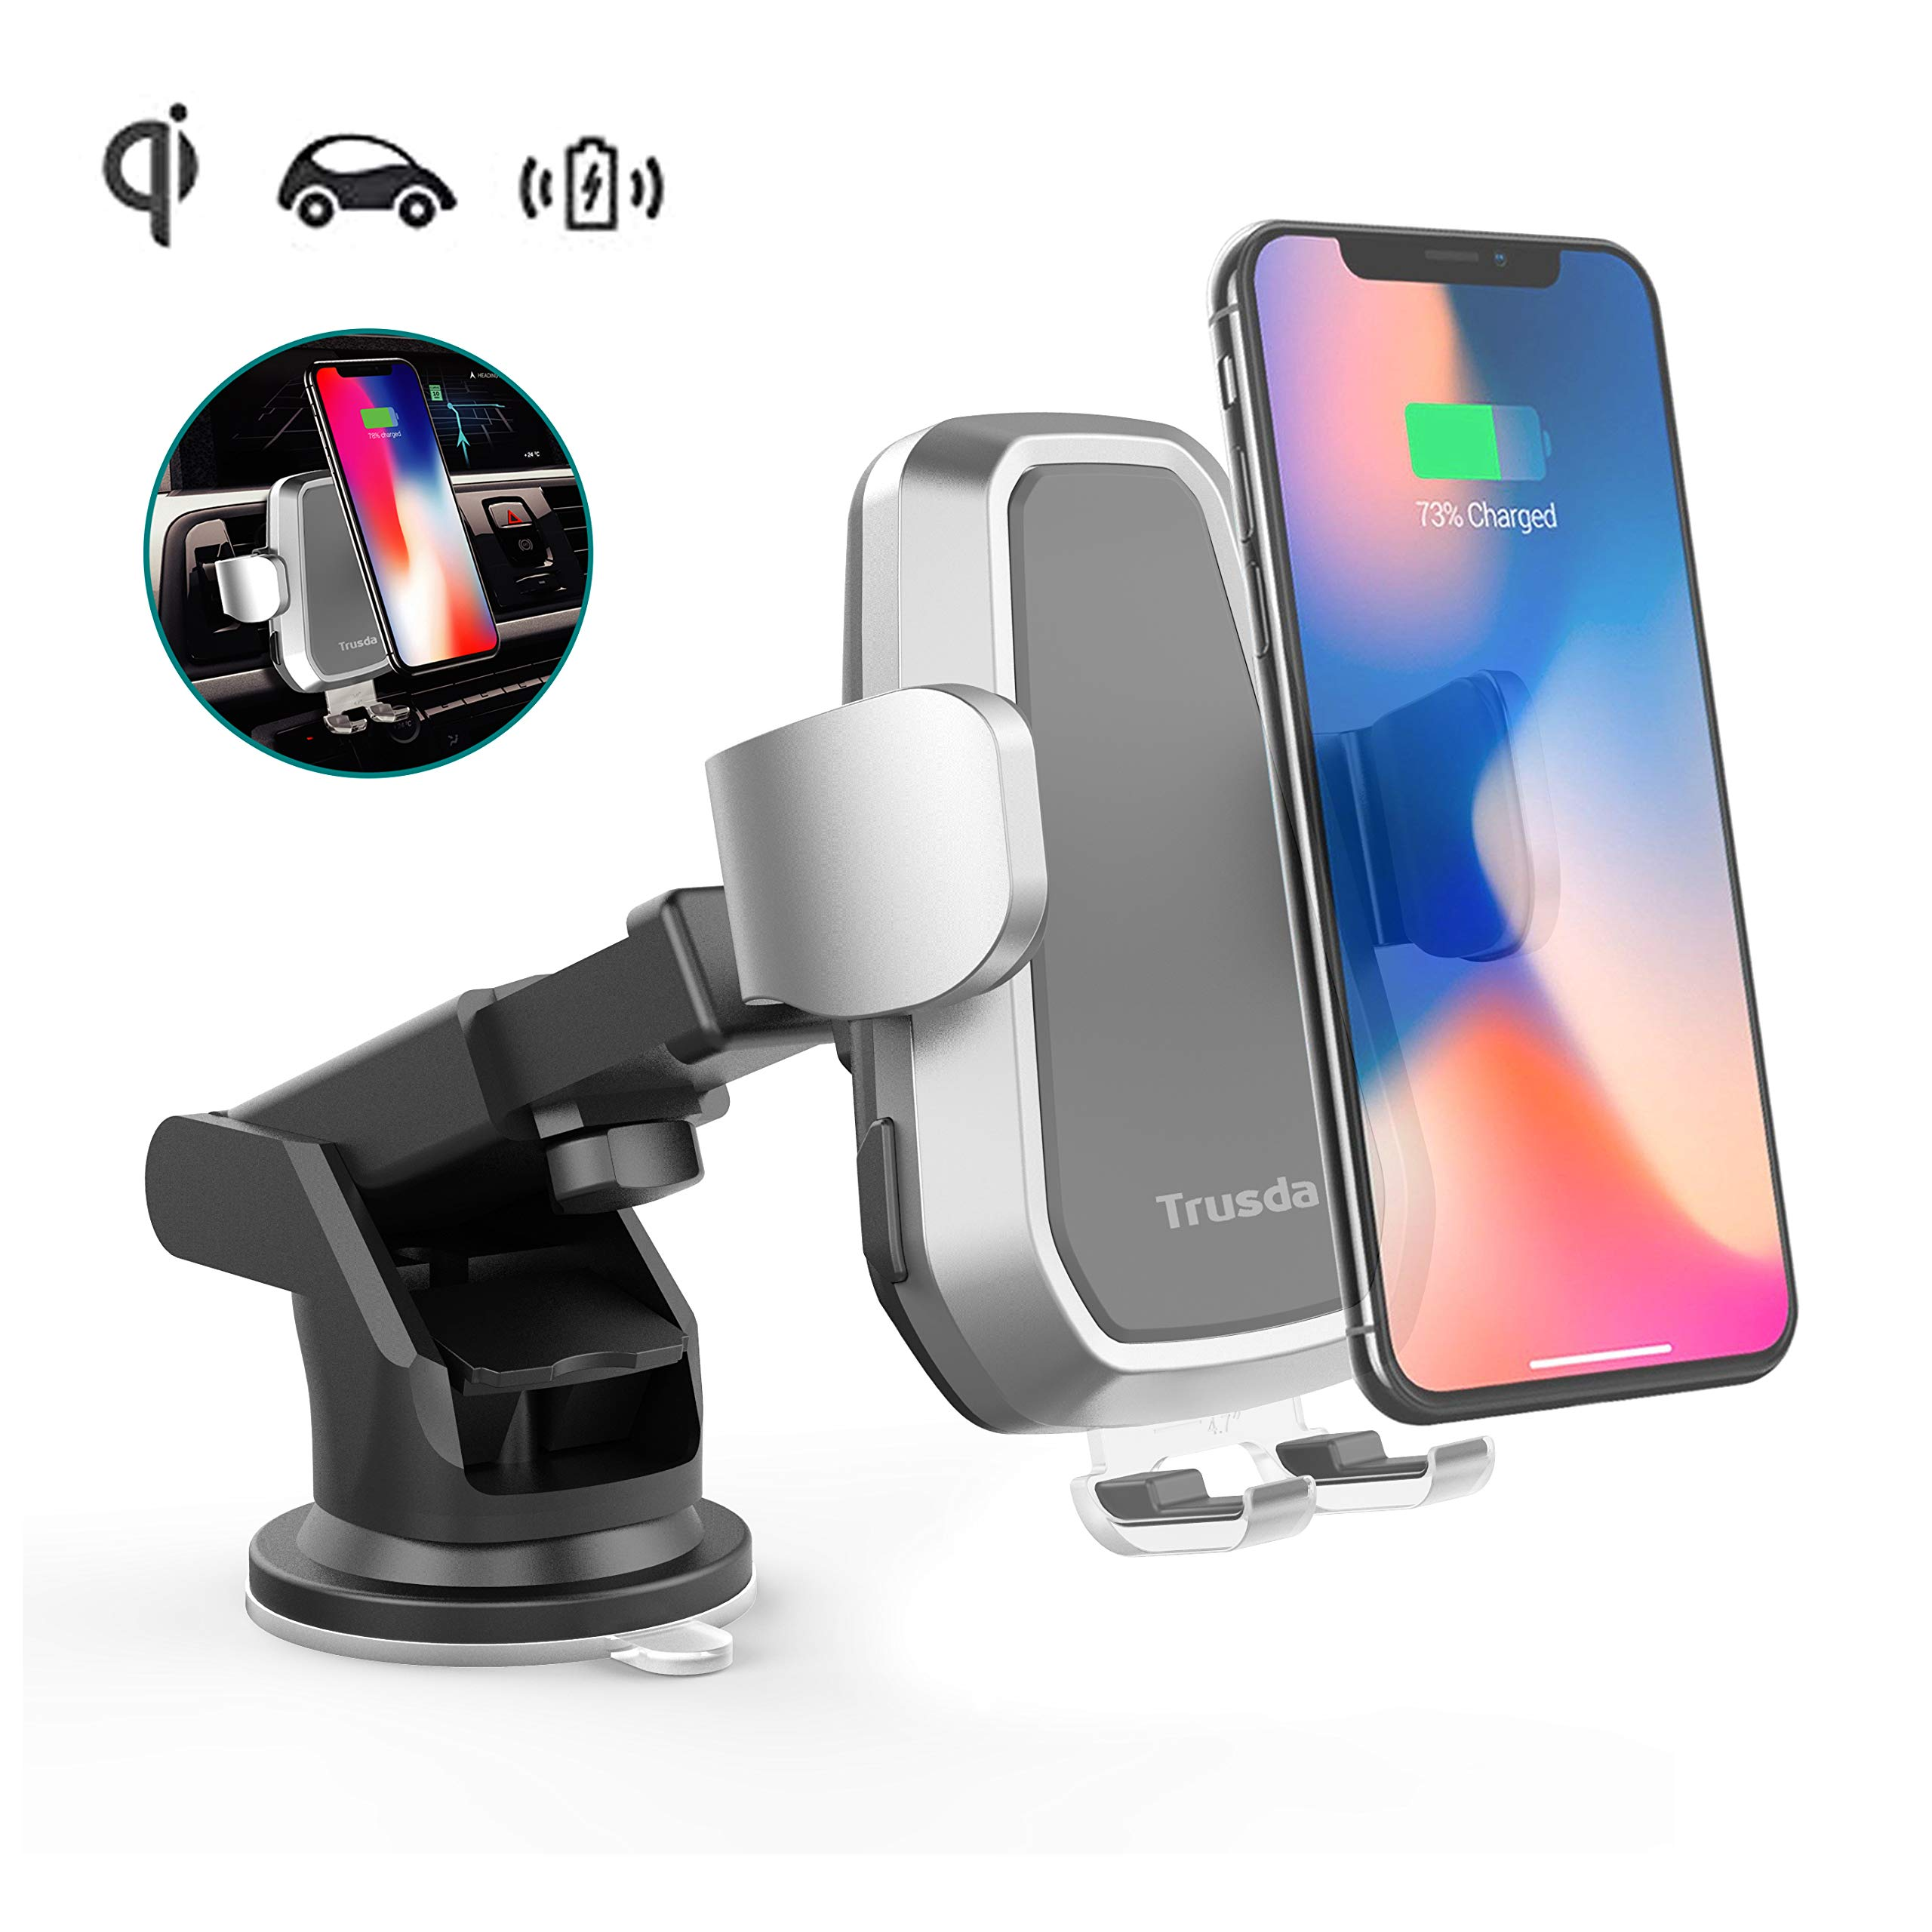 Qi Wireless Fast Charger Car Mount Automatic, Air Vent Phone Holder for iPhone Xs MAX/XR/XS/X/8/8 Plus Samsung Galaxy S9/8/7/Note 8/9 and All Qi-Enabled Phones by Trusda